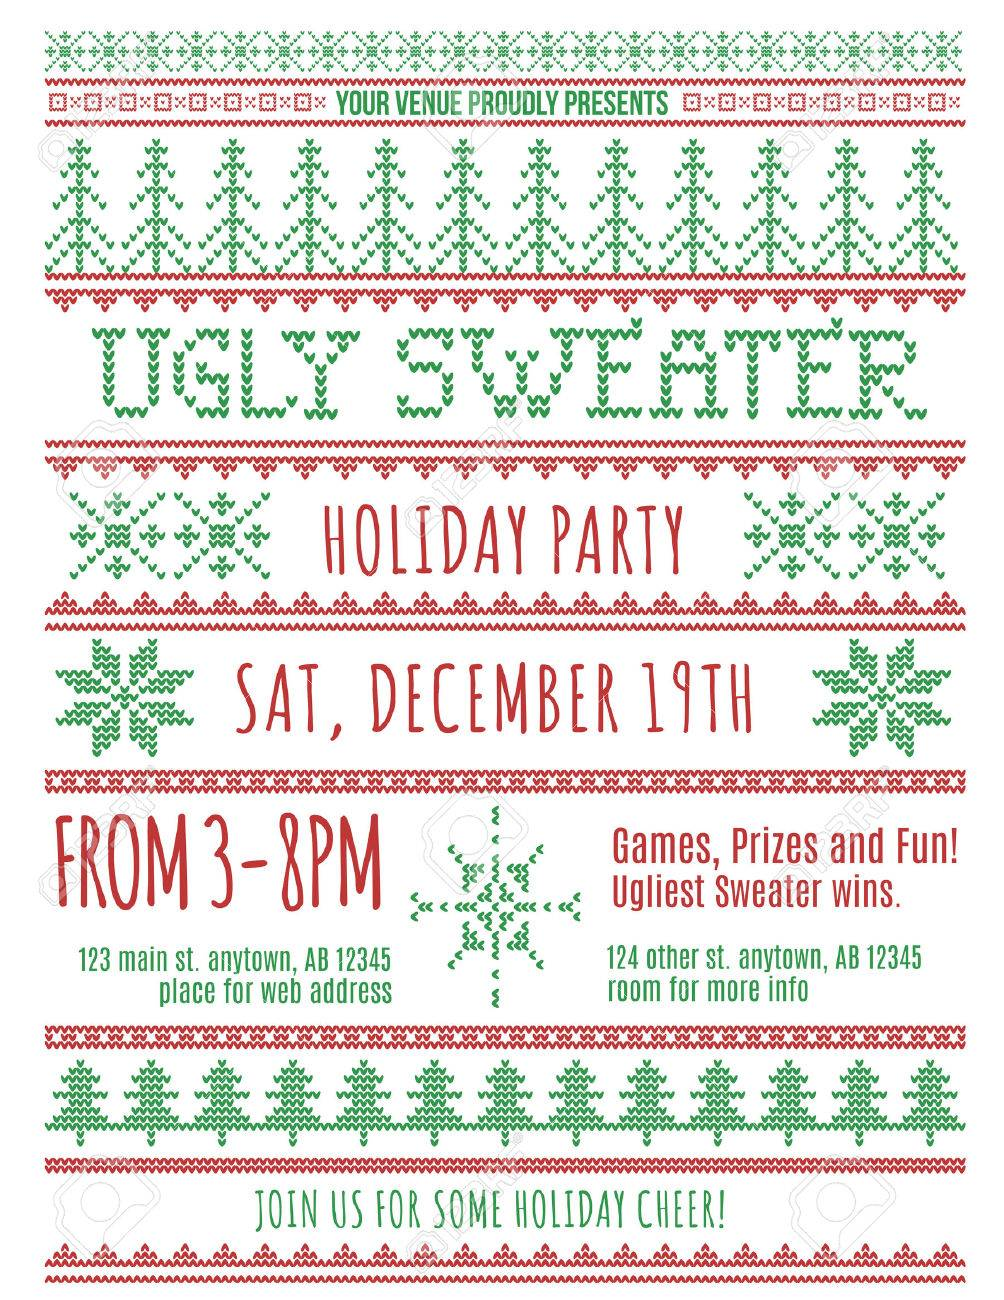 Ugly Christmas Sweater Party Invite.Red And Green Ugly Christmas Sweater Party Invitation Template